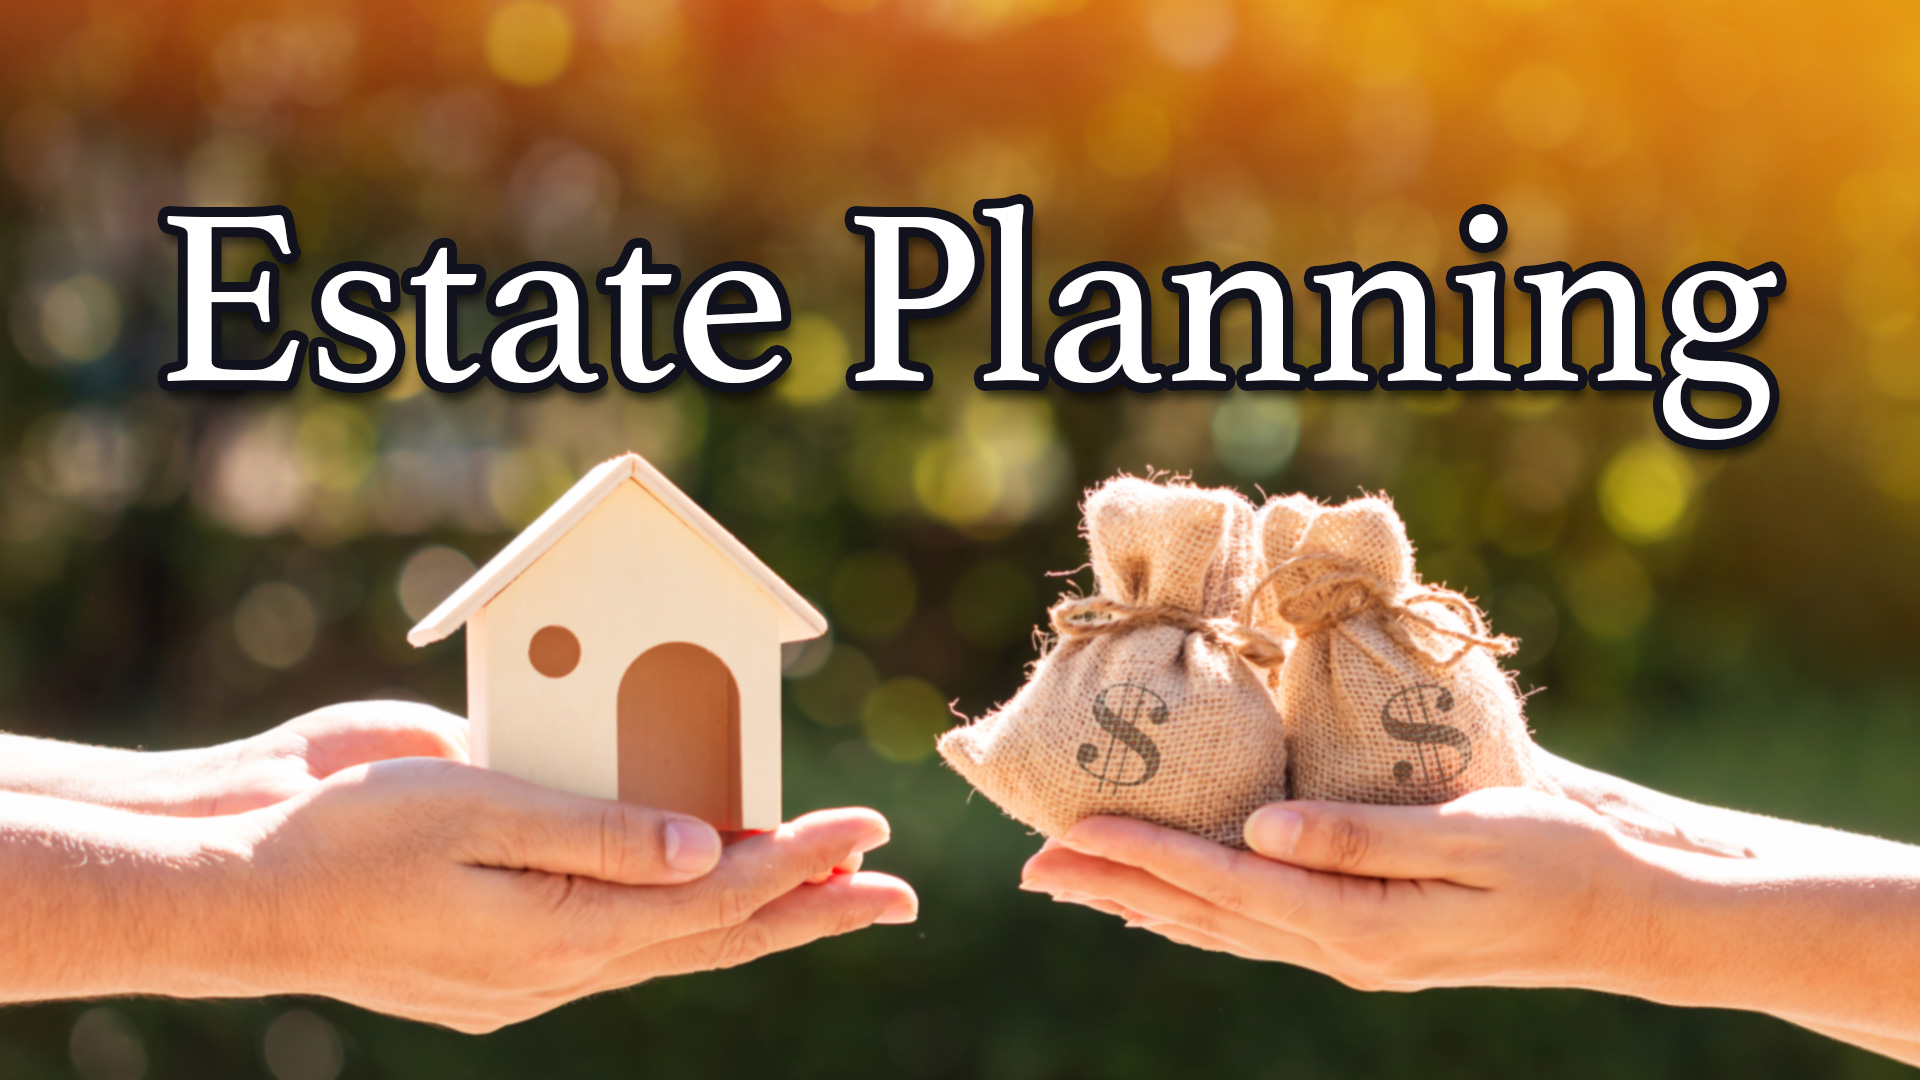 Planning Your Estate When You Have Strained Family Relationships